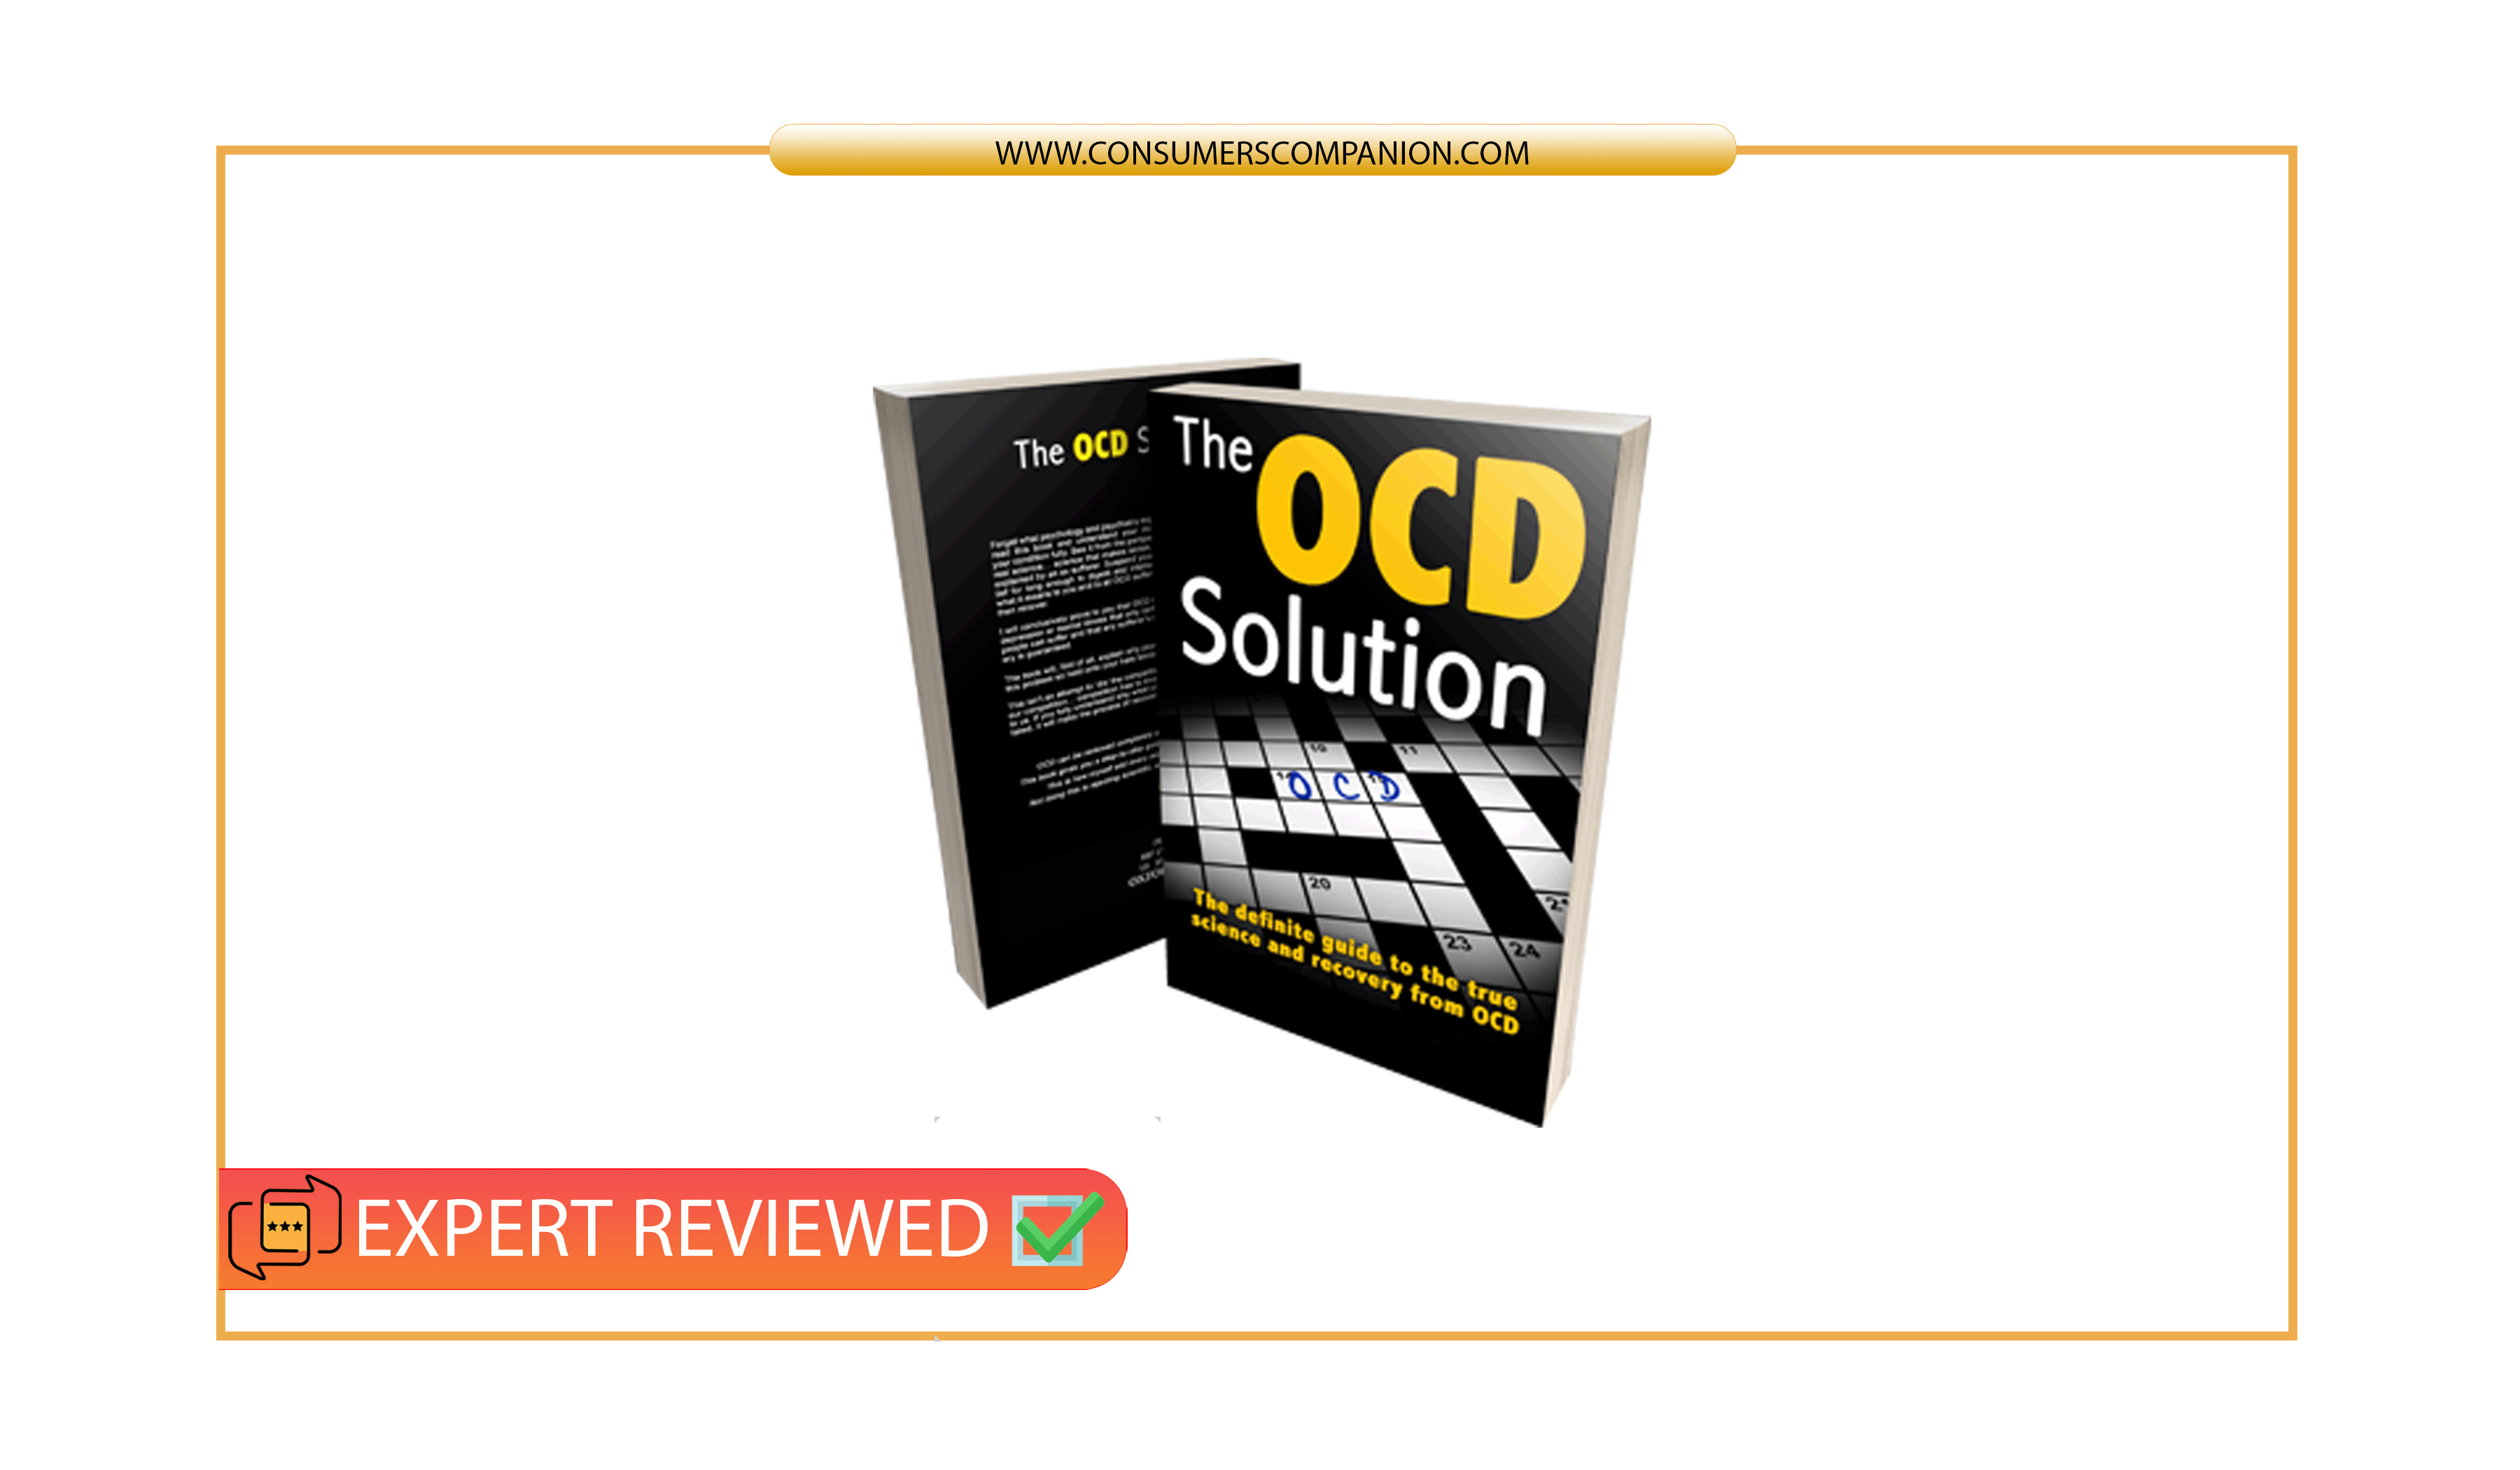 The OCD Solution reviews